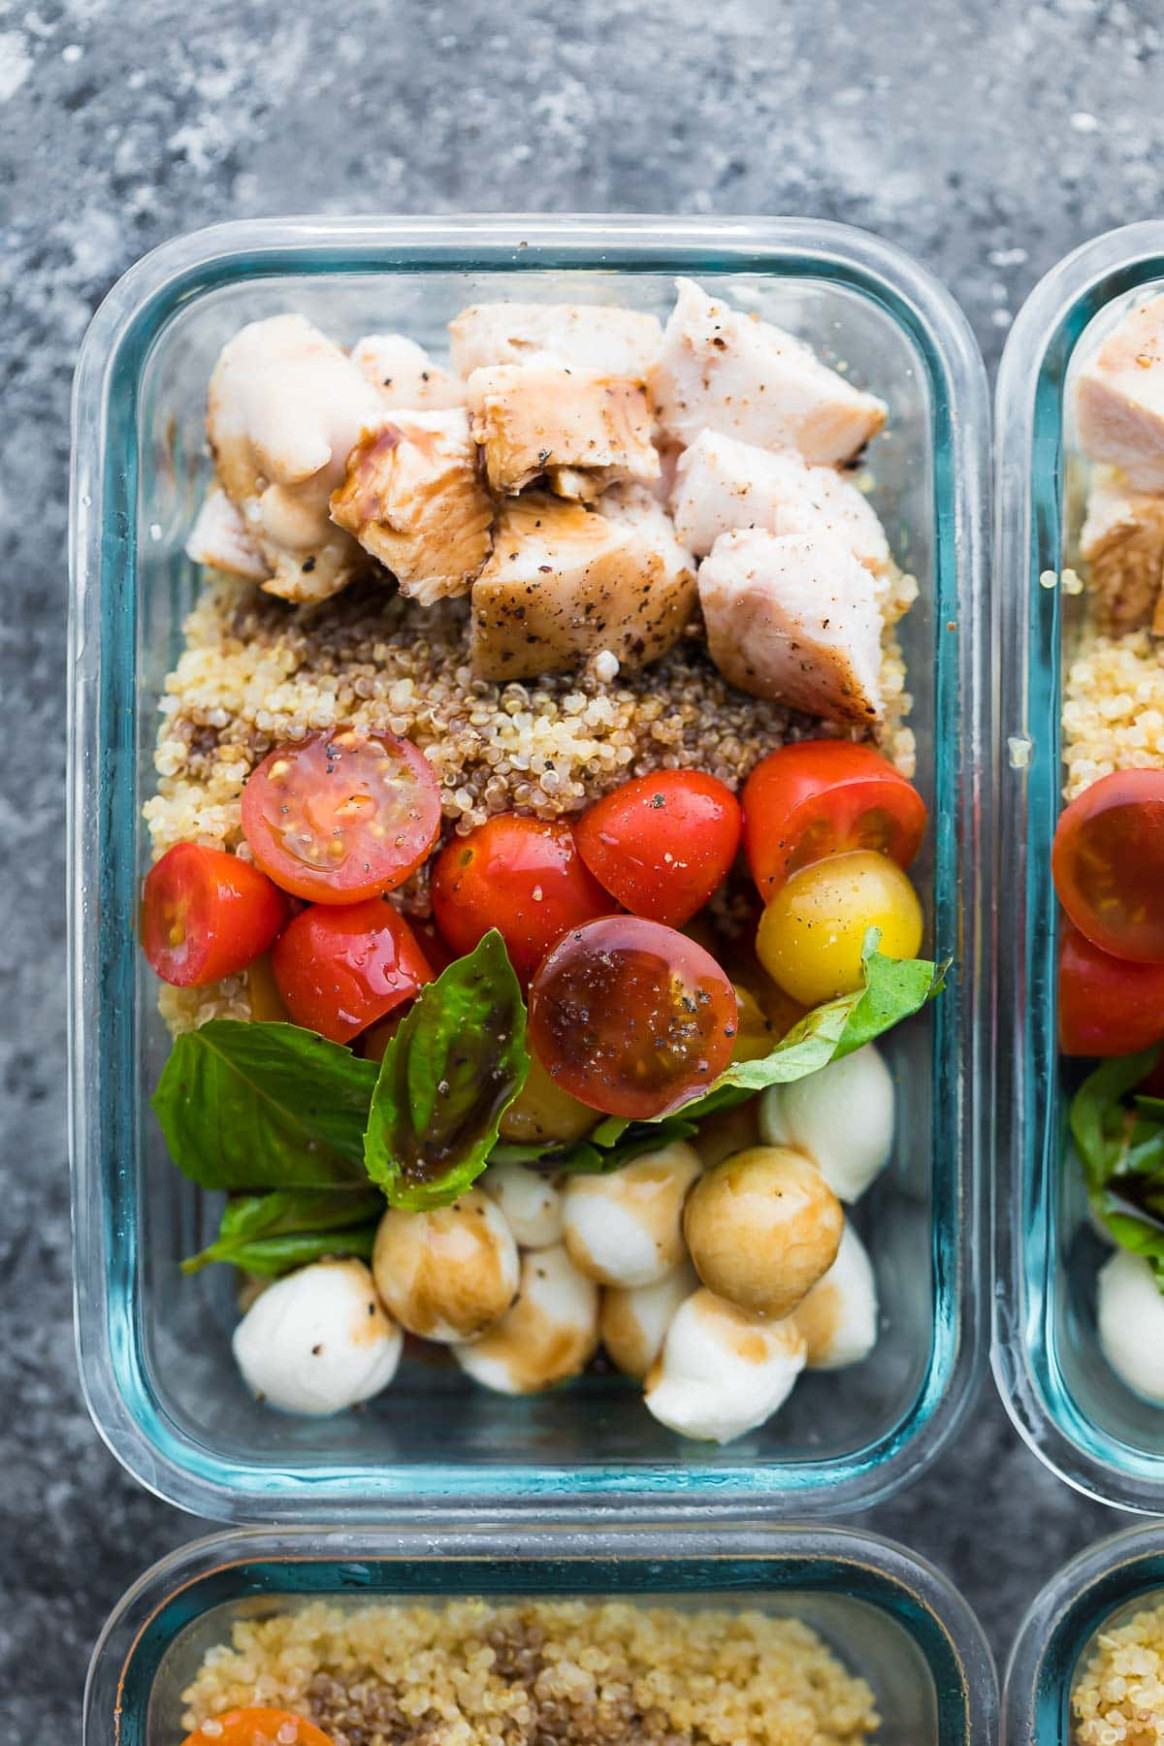 14 Healthy Lunch Ideas For Work - Recipes Cold Dinner